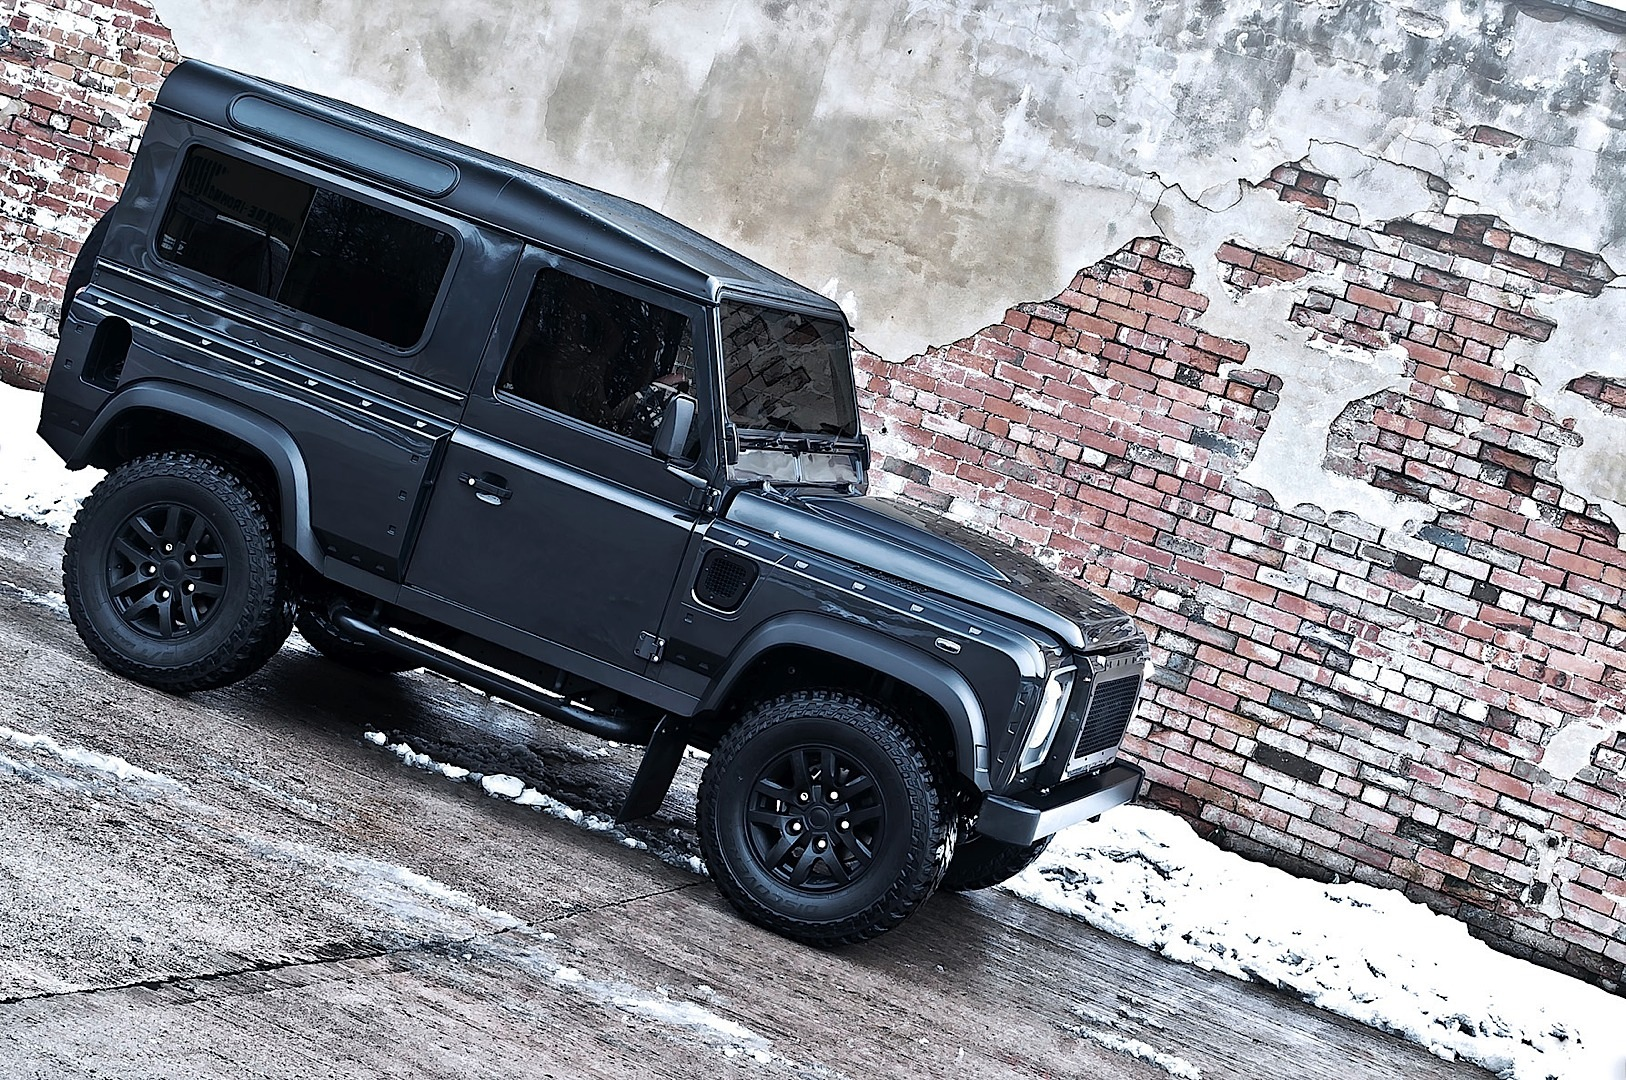 Maxresdefault besides Land Rover Defender Gets Tricked Out By Urban Truck Photo Gallery moreover Land Rover Discovery Sport as well Hqdefault together with Img. on 2017 land rover discovery sport